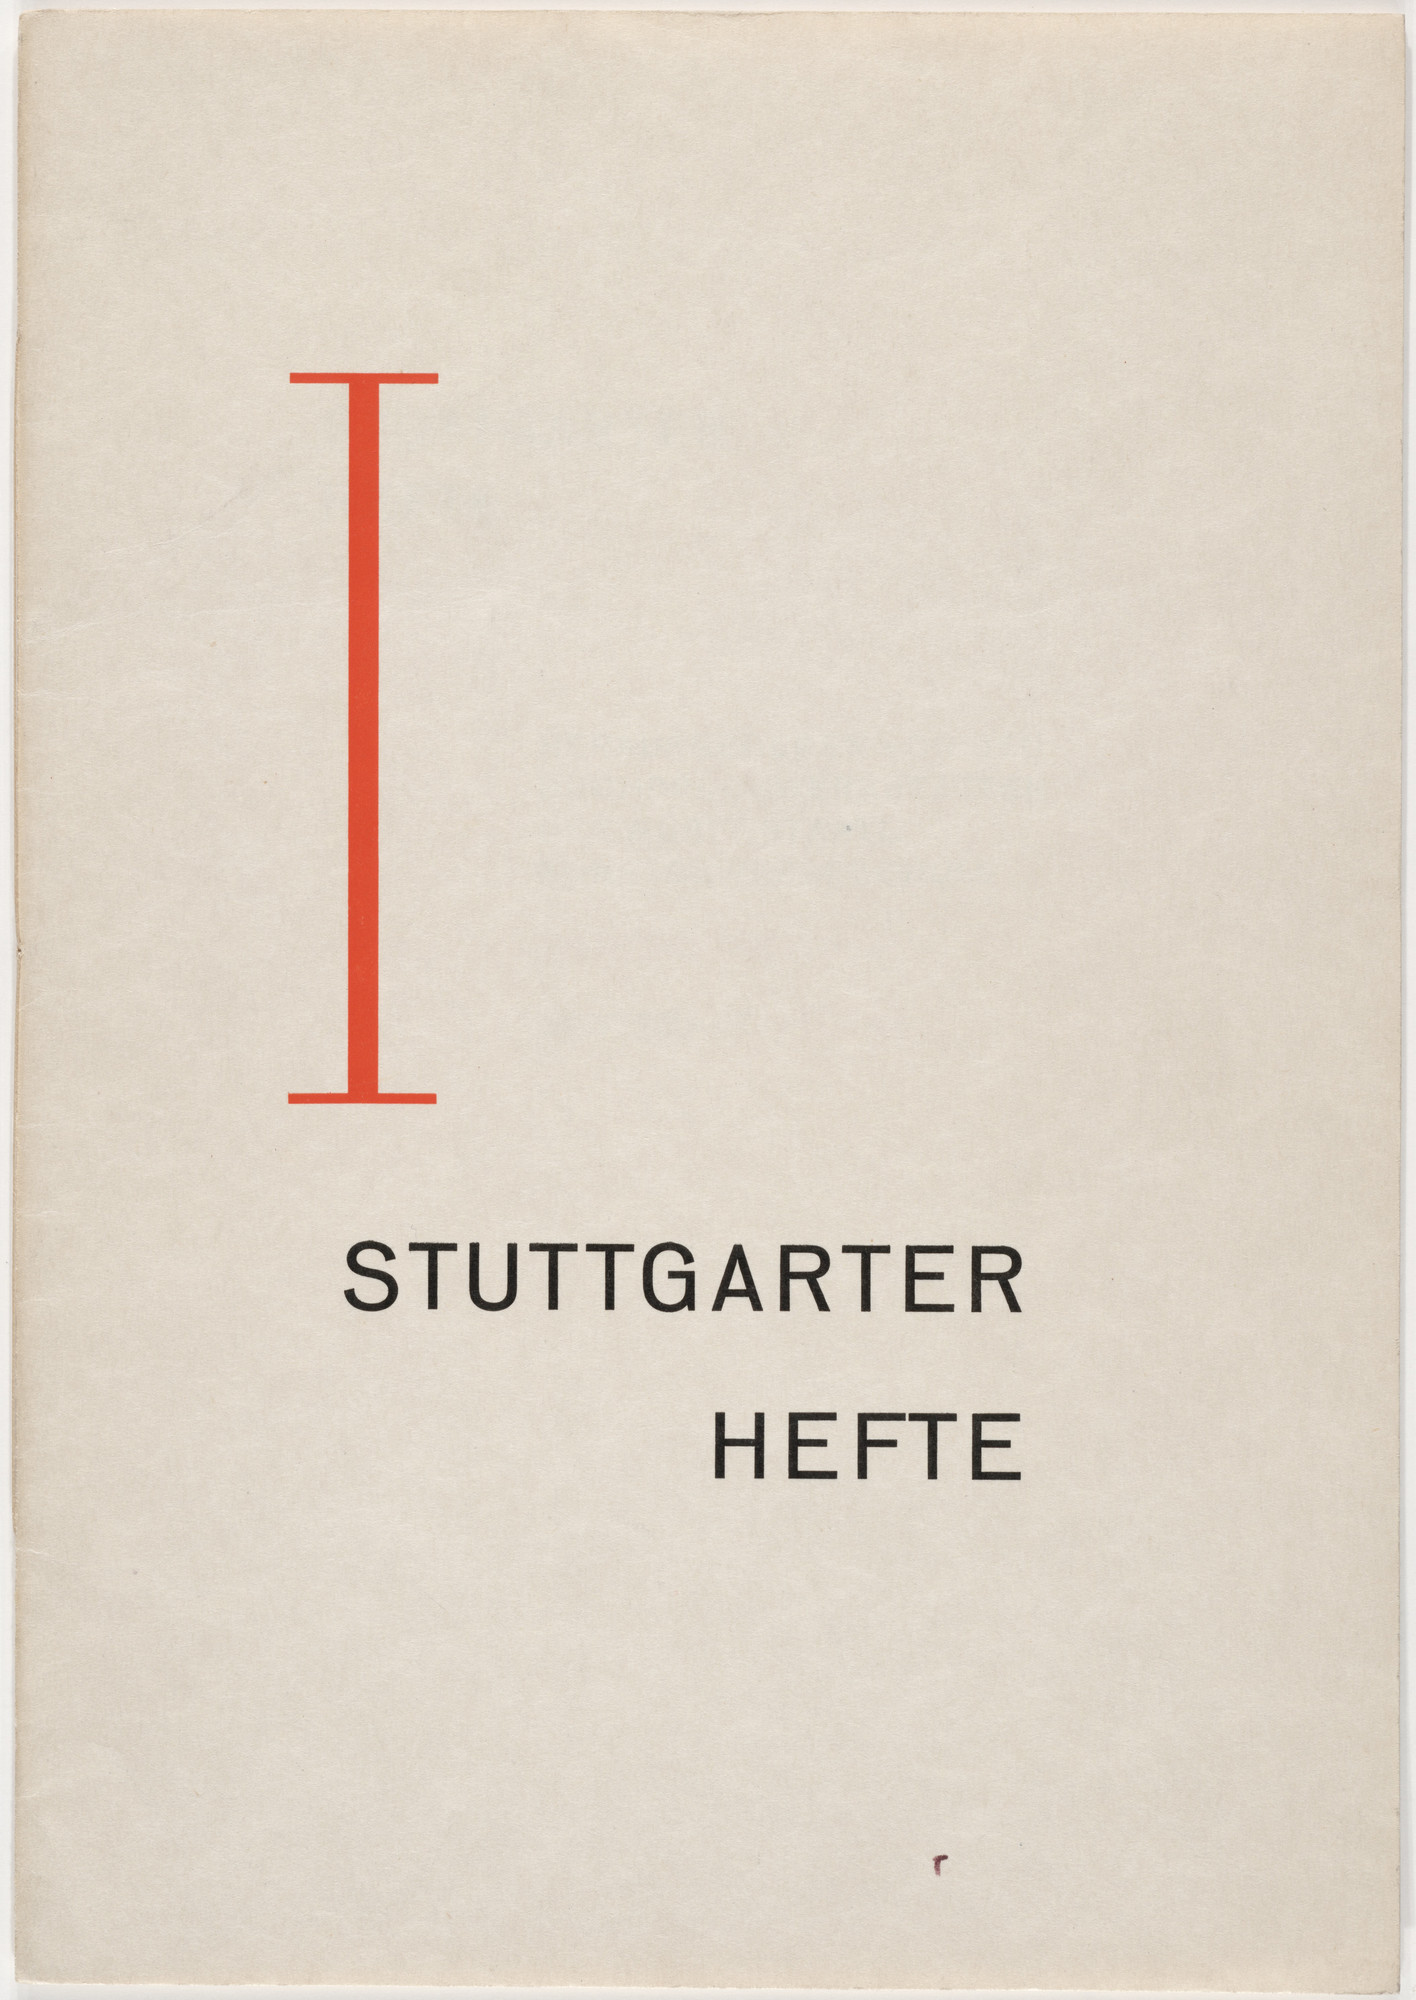 Unknown Artist. Stuttgarter Hefte I. 1926